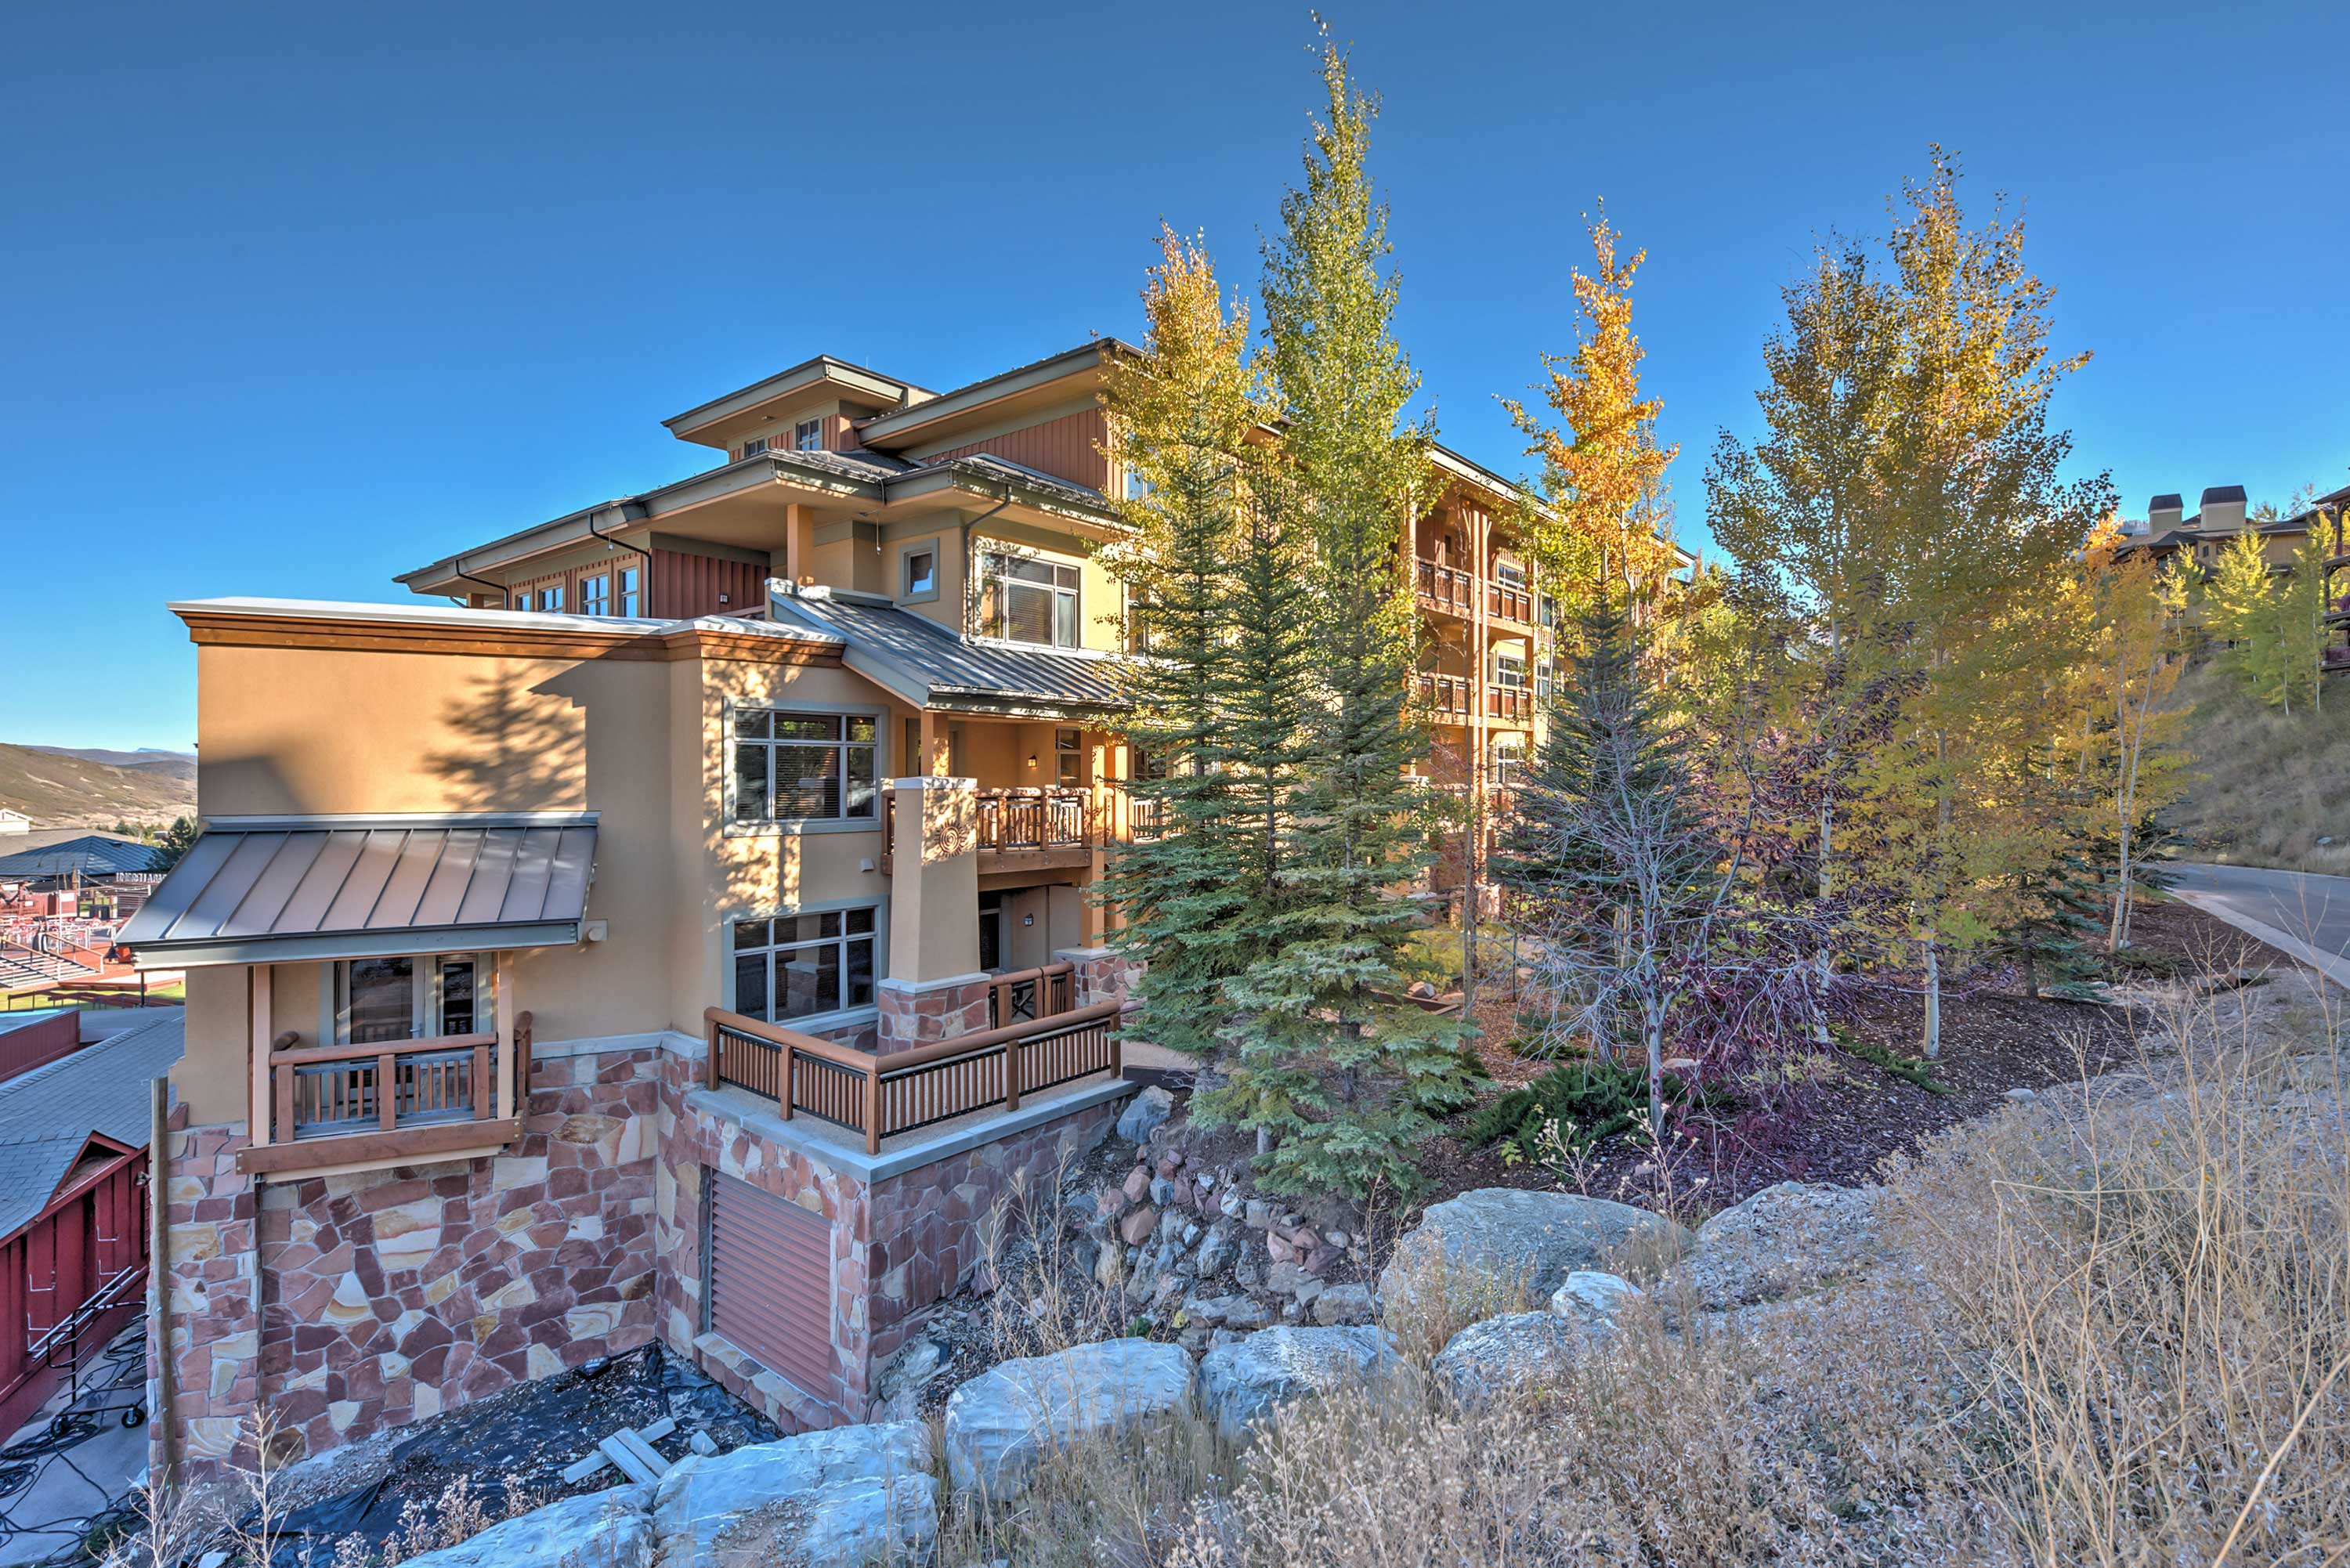 Enjoy the best location in the heart of Canyons Village at the Sundial Lodge!